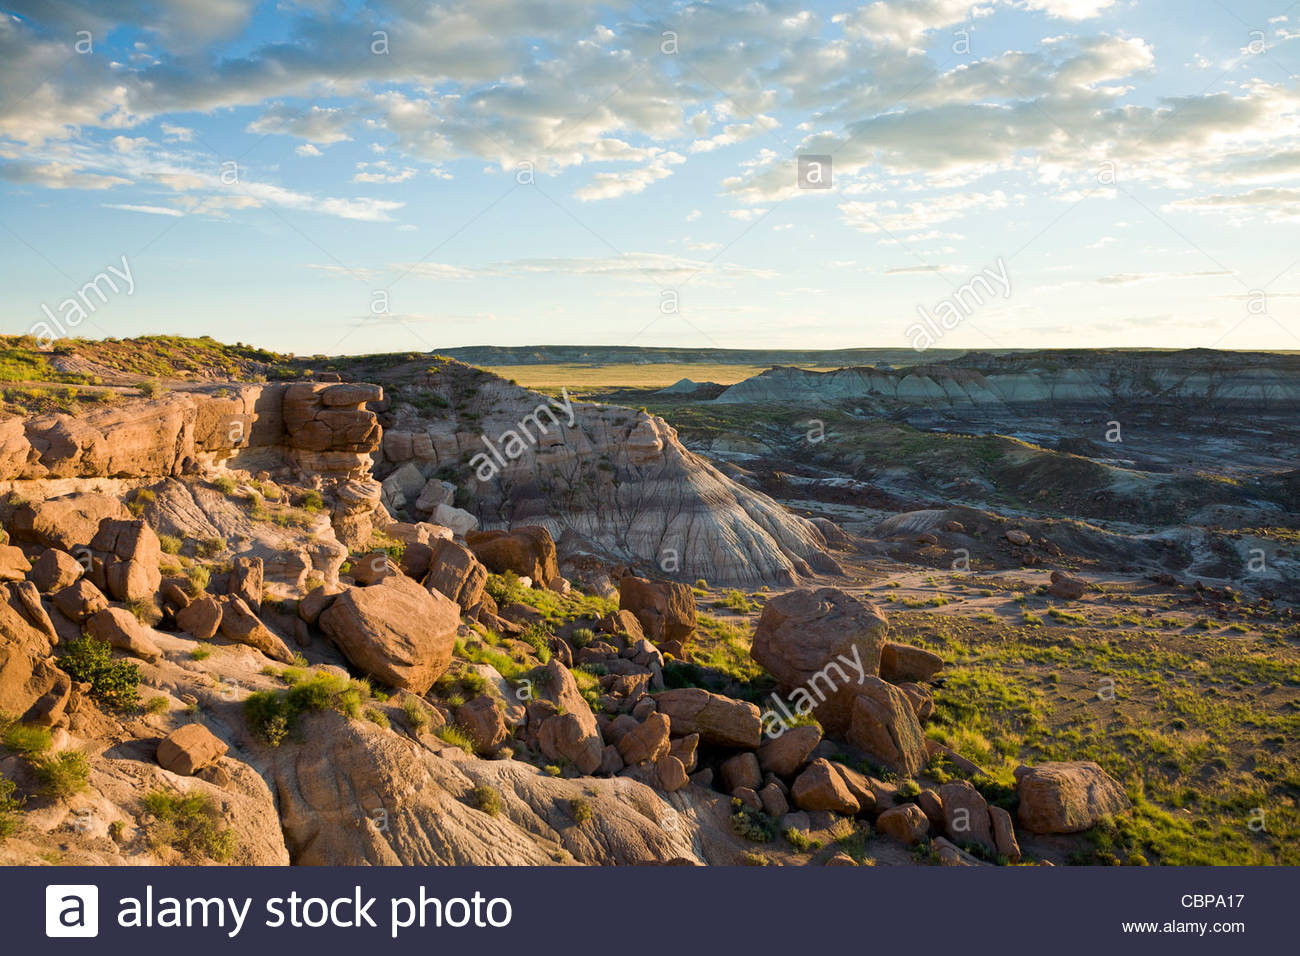 View of the Painted Desert at sunset, Petrified Forest National Park, Arizona, United States - Stock Image